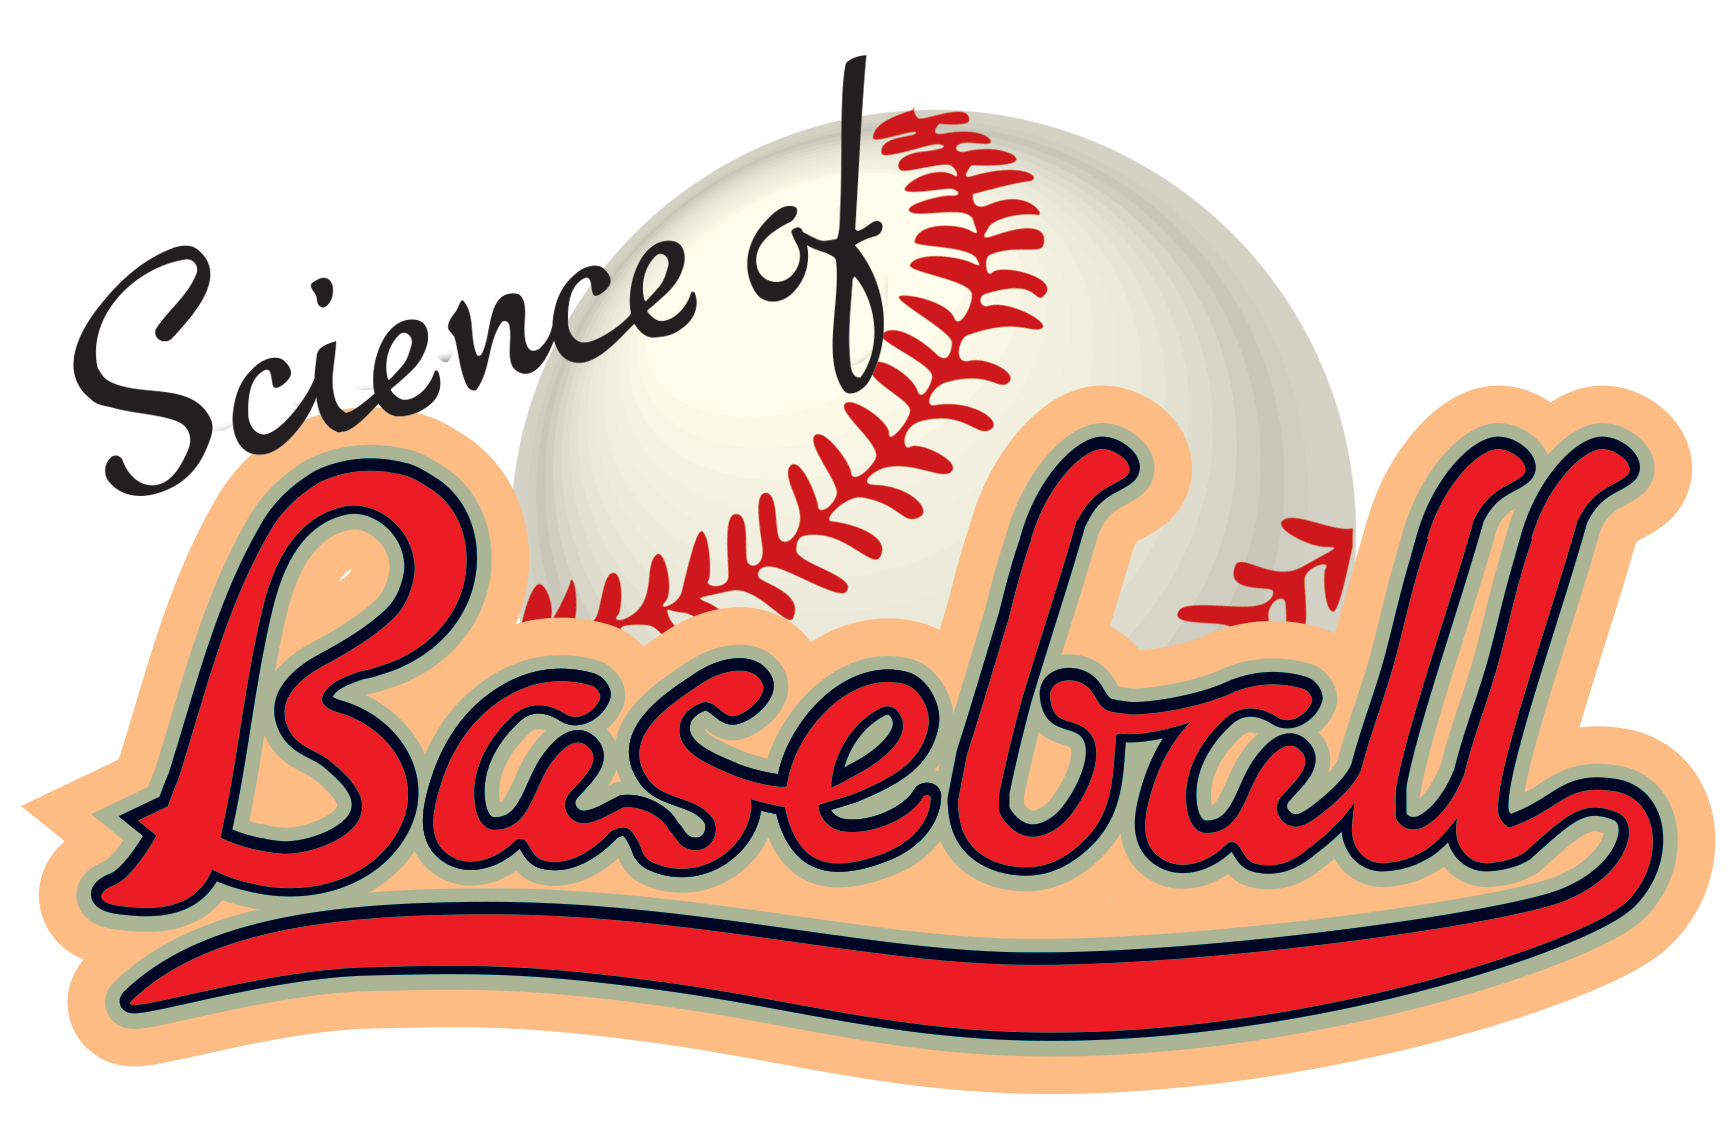 Baseball clipart hope you had a ball banner royalty free download Science of Baseball banner royalty free download